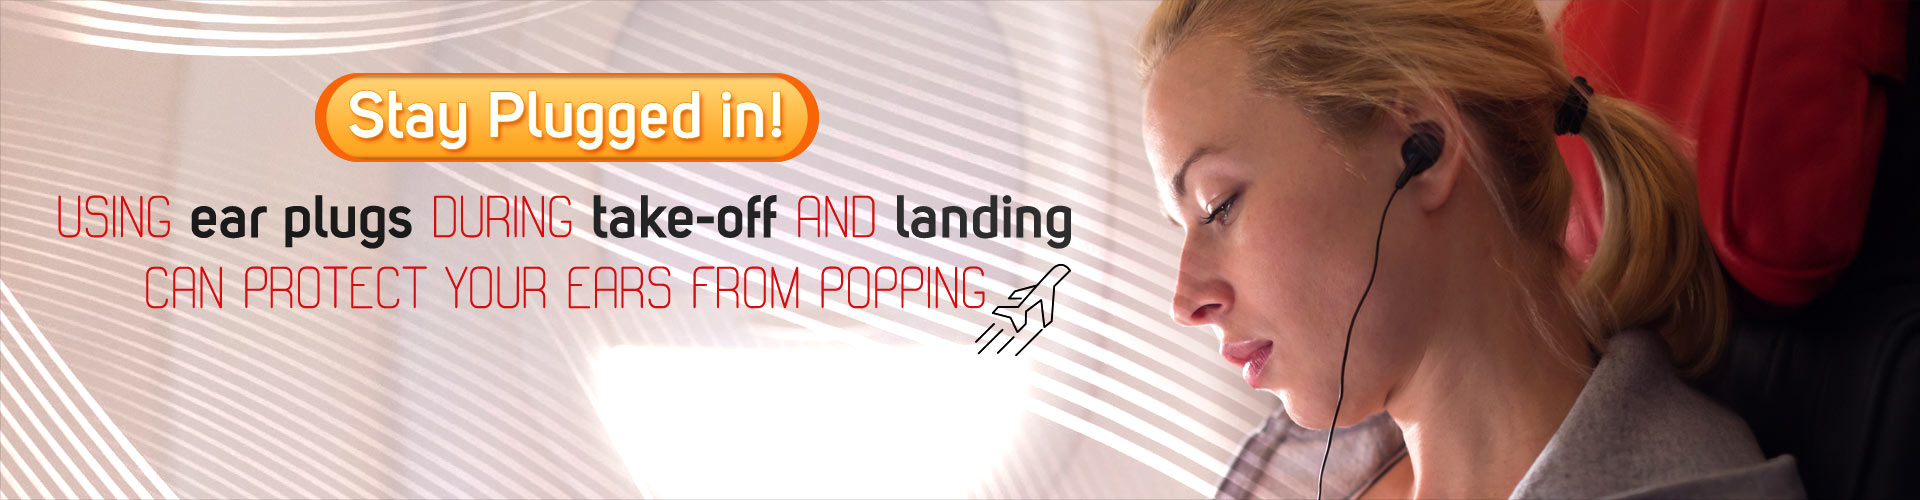 Using Earplugs During Take-off and Landing can Give You a Pleasant Flight Journey